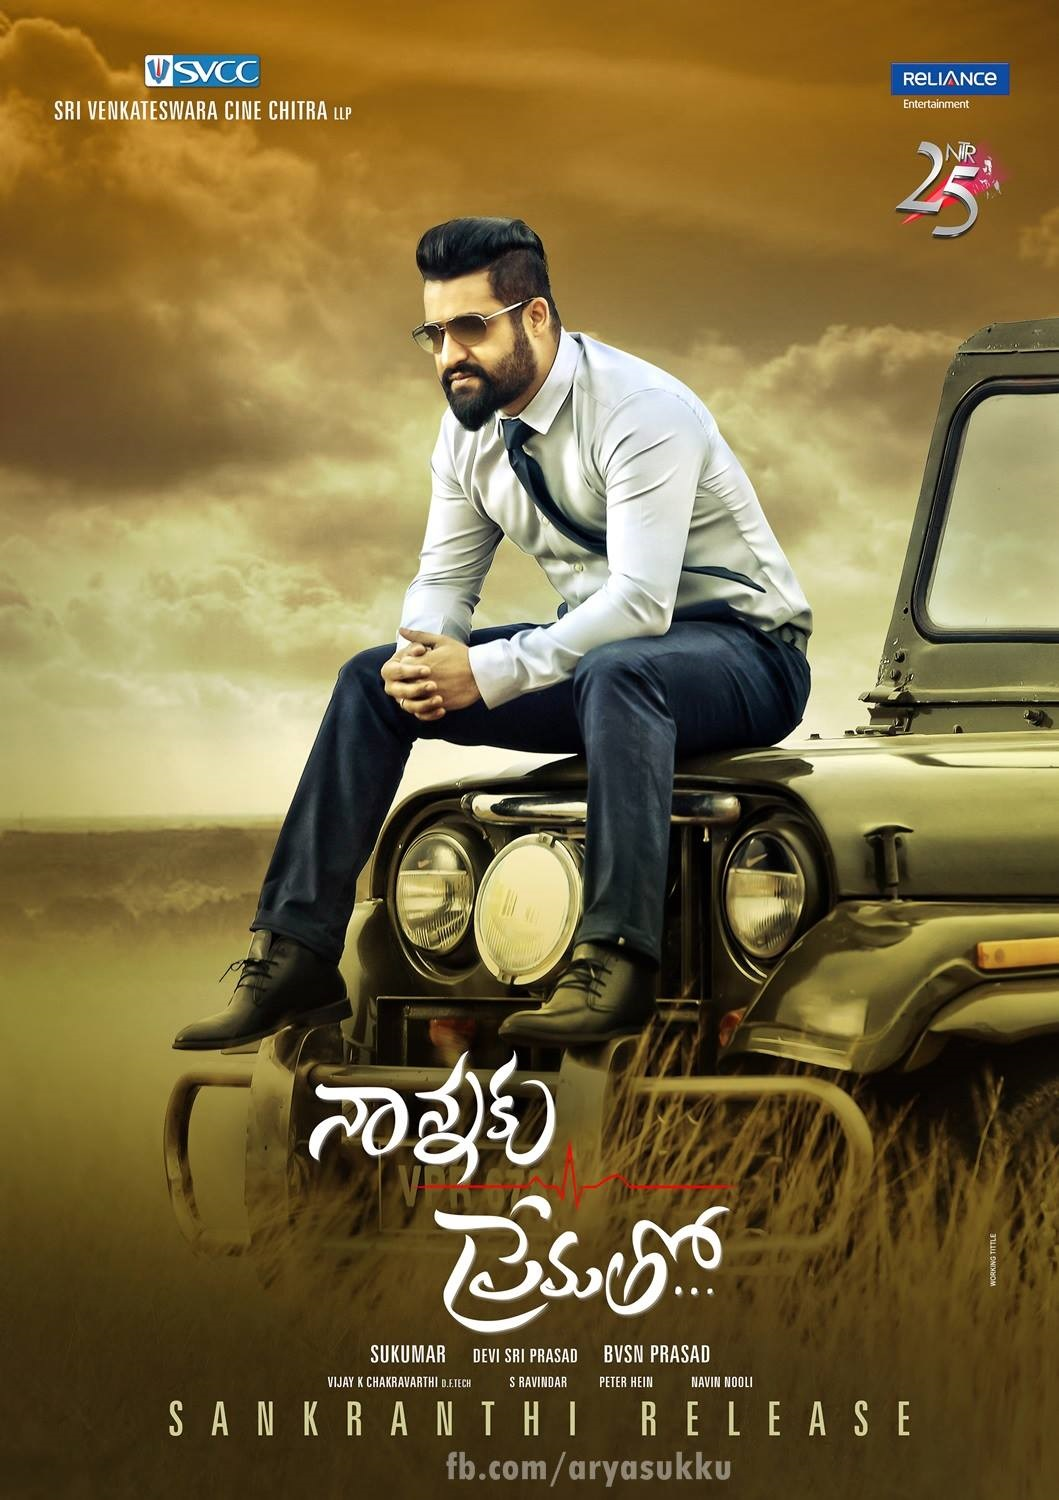 jr.ntr movies hits and flops list